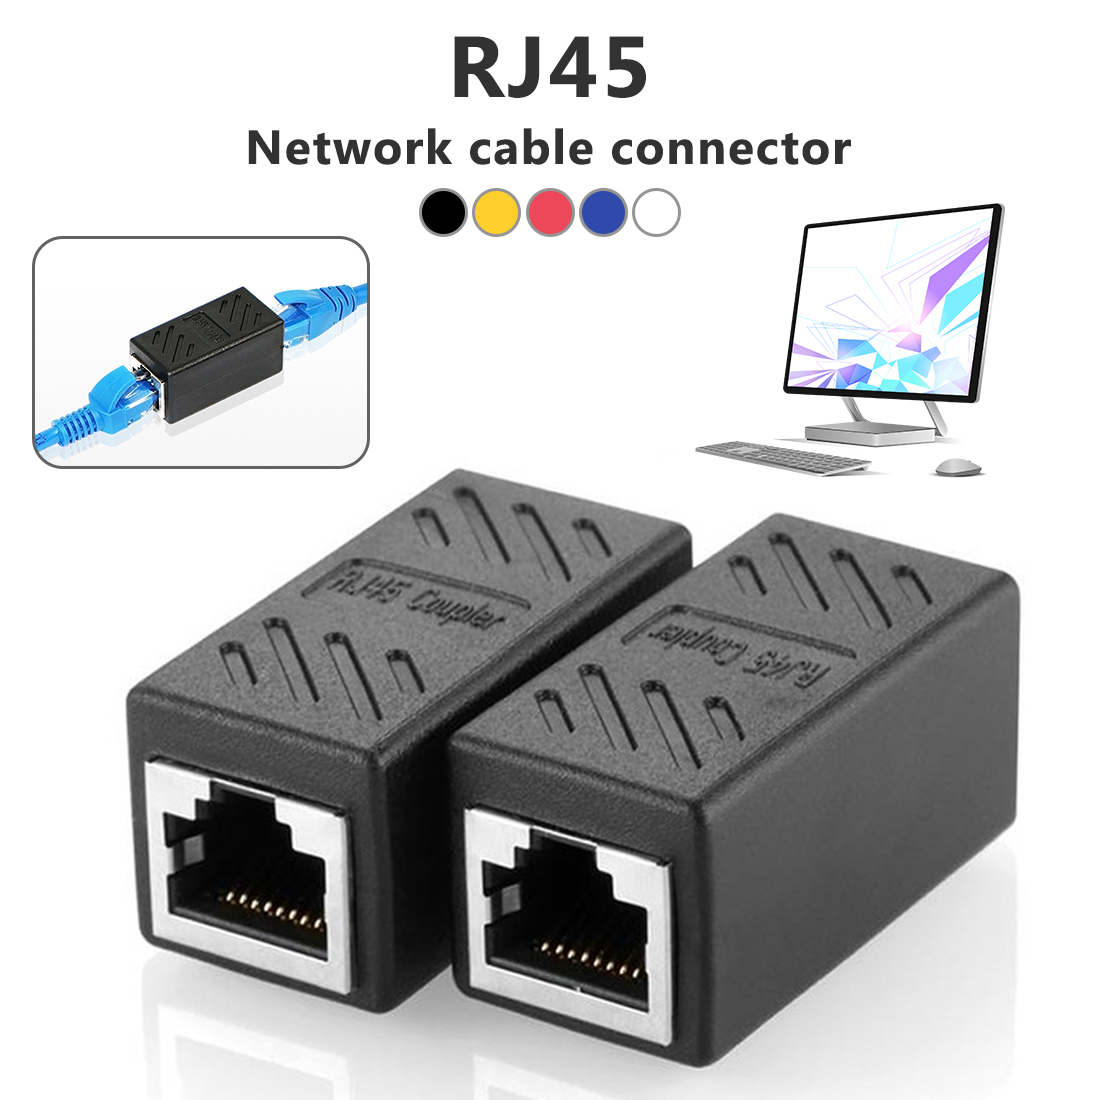 RJ45 straight-through head network straight-through head network line extension head network line butt joint forming